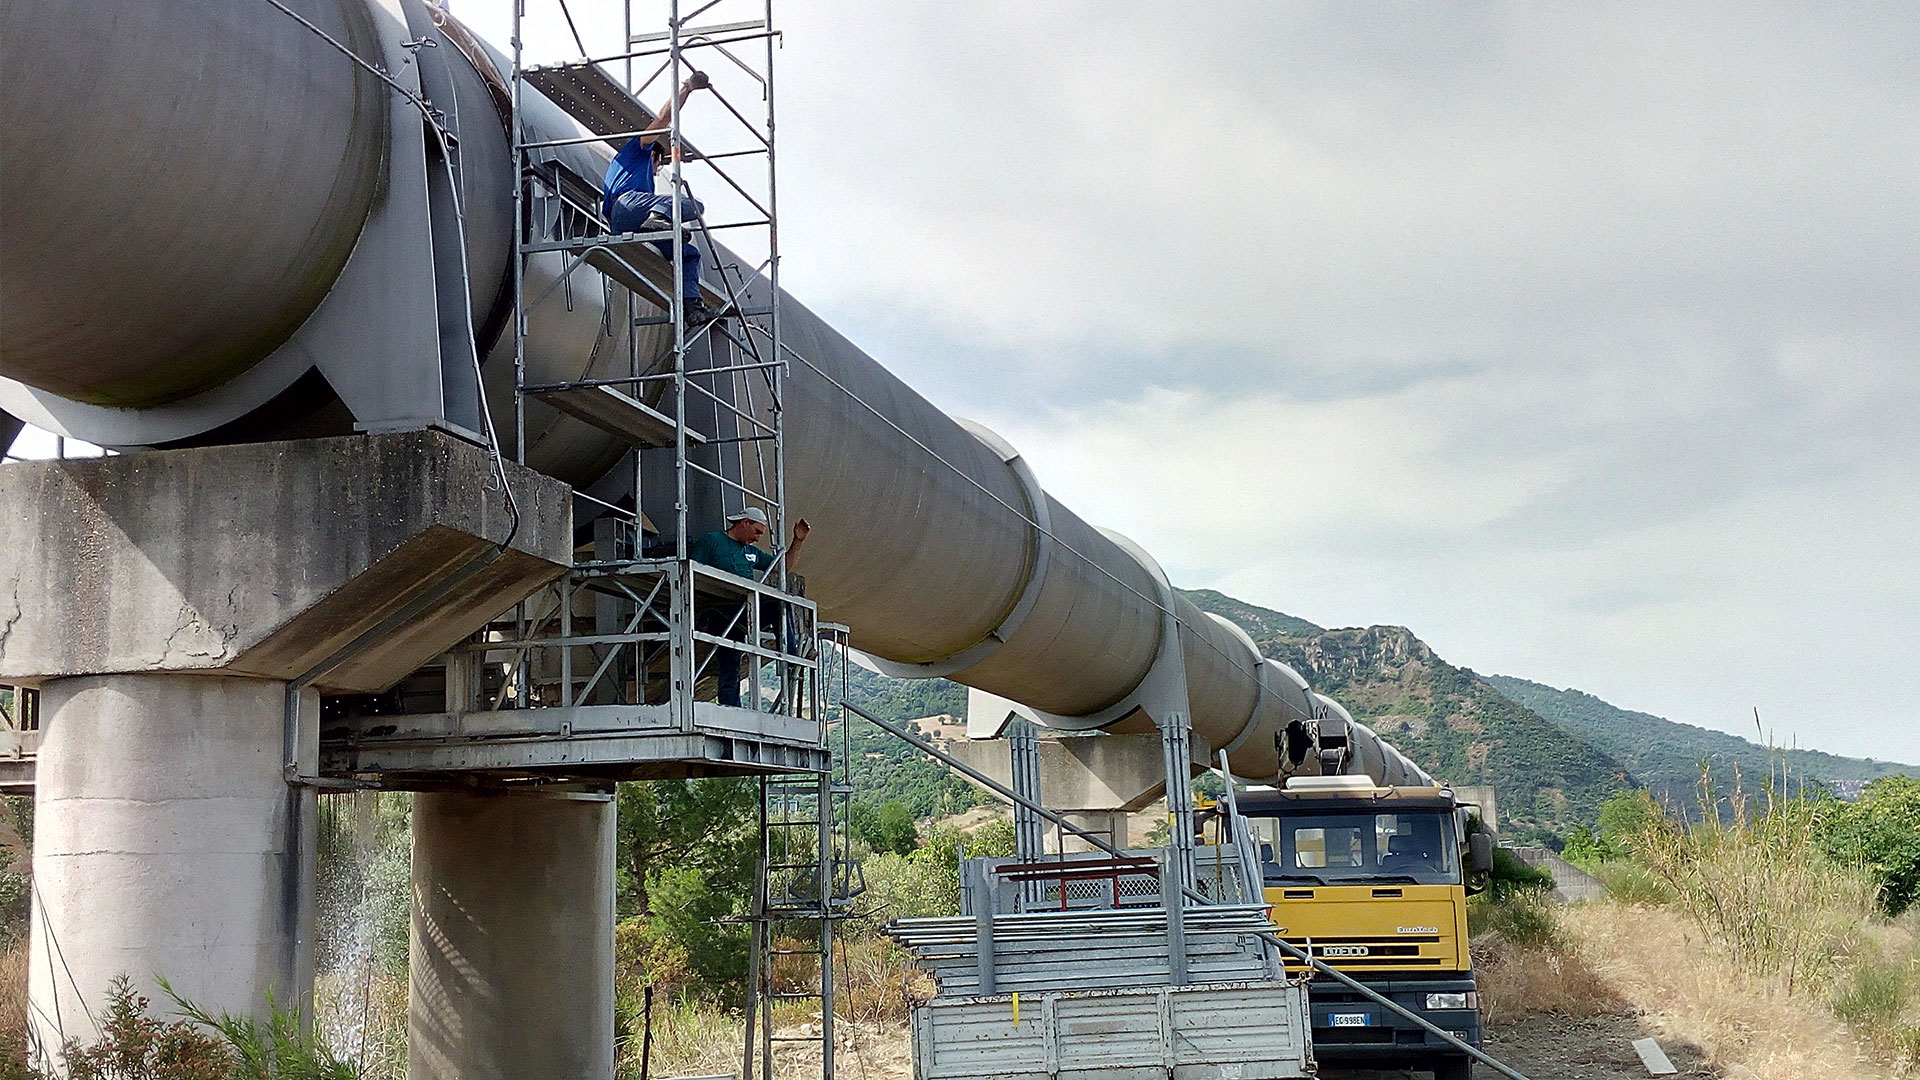 Hydro Stop socket encapsulation collars were used for repairing eight leaks on the biggest pipeline in Southern Italy